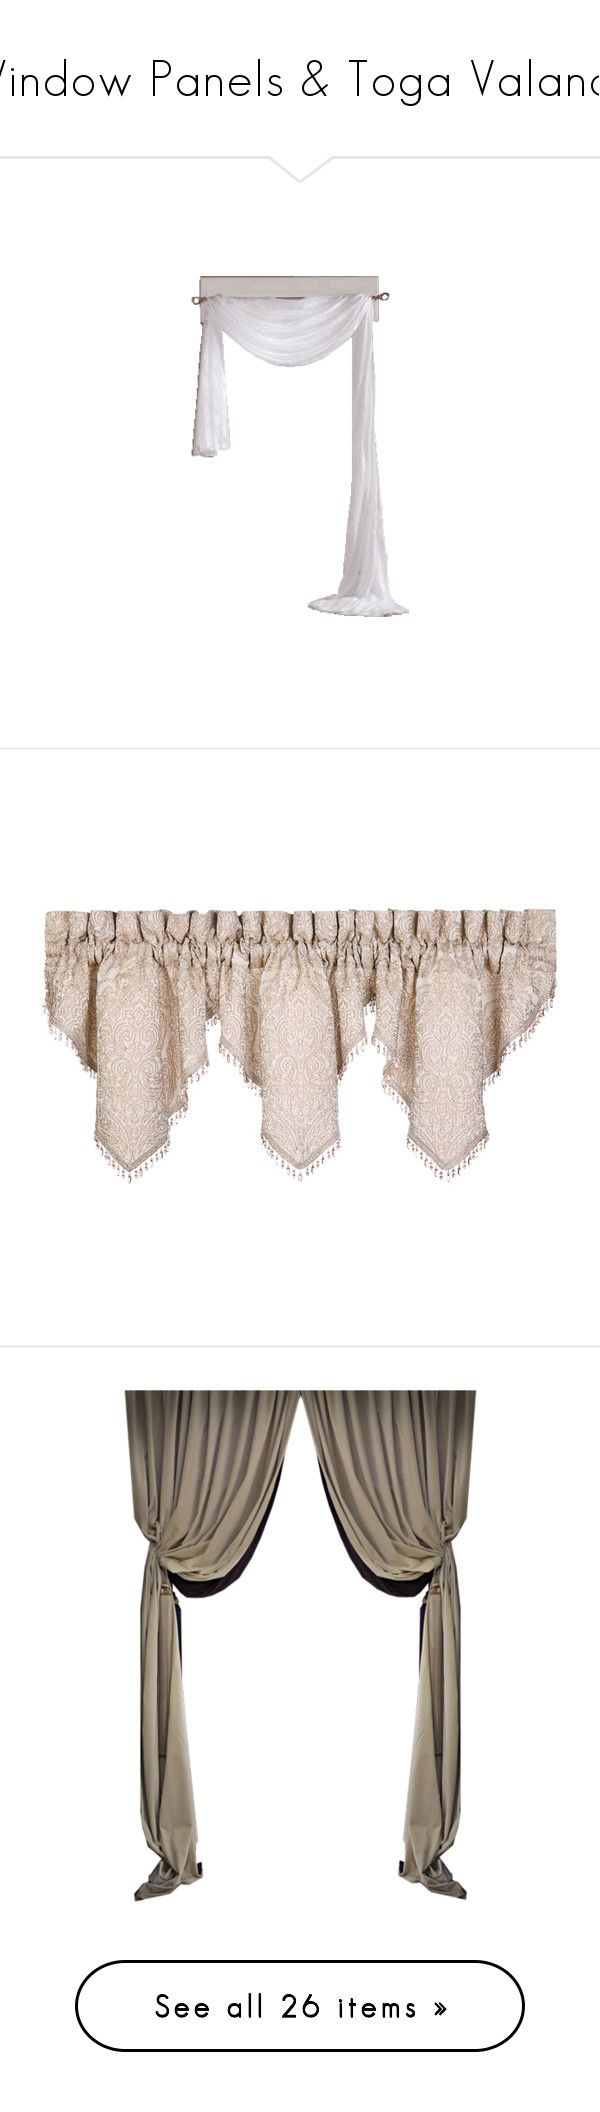 """""""Window Panels & Toga Valance"""" by suelb ❤ liked on Polyvore featuring curtains, windows, drapes, valance, home, home decor, window treatments, sand, beaded valance and window panels"""